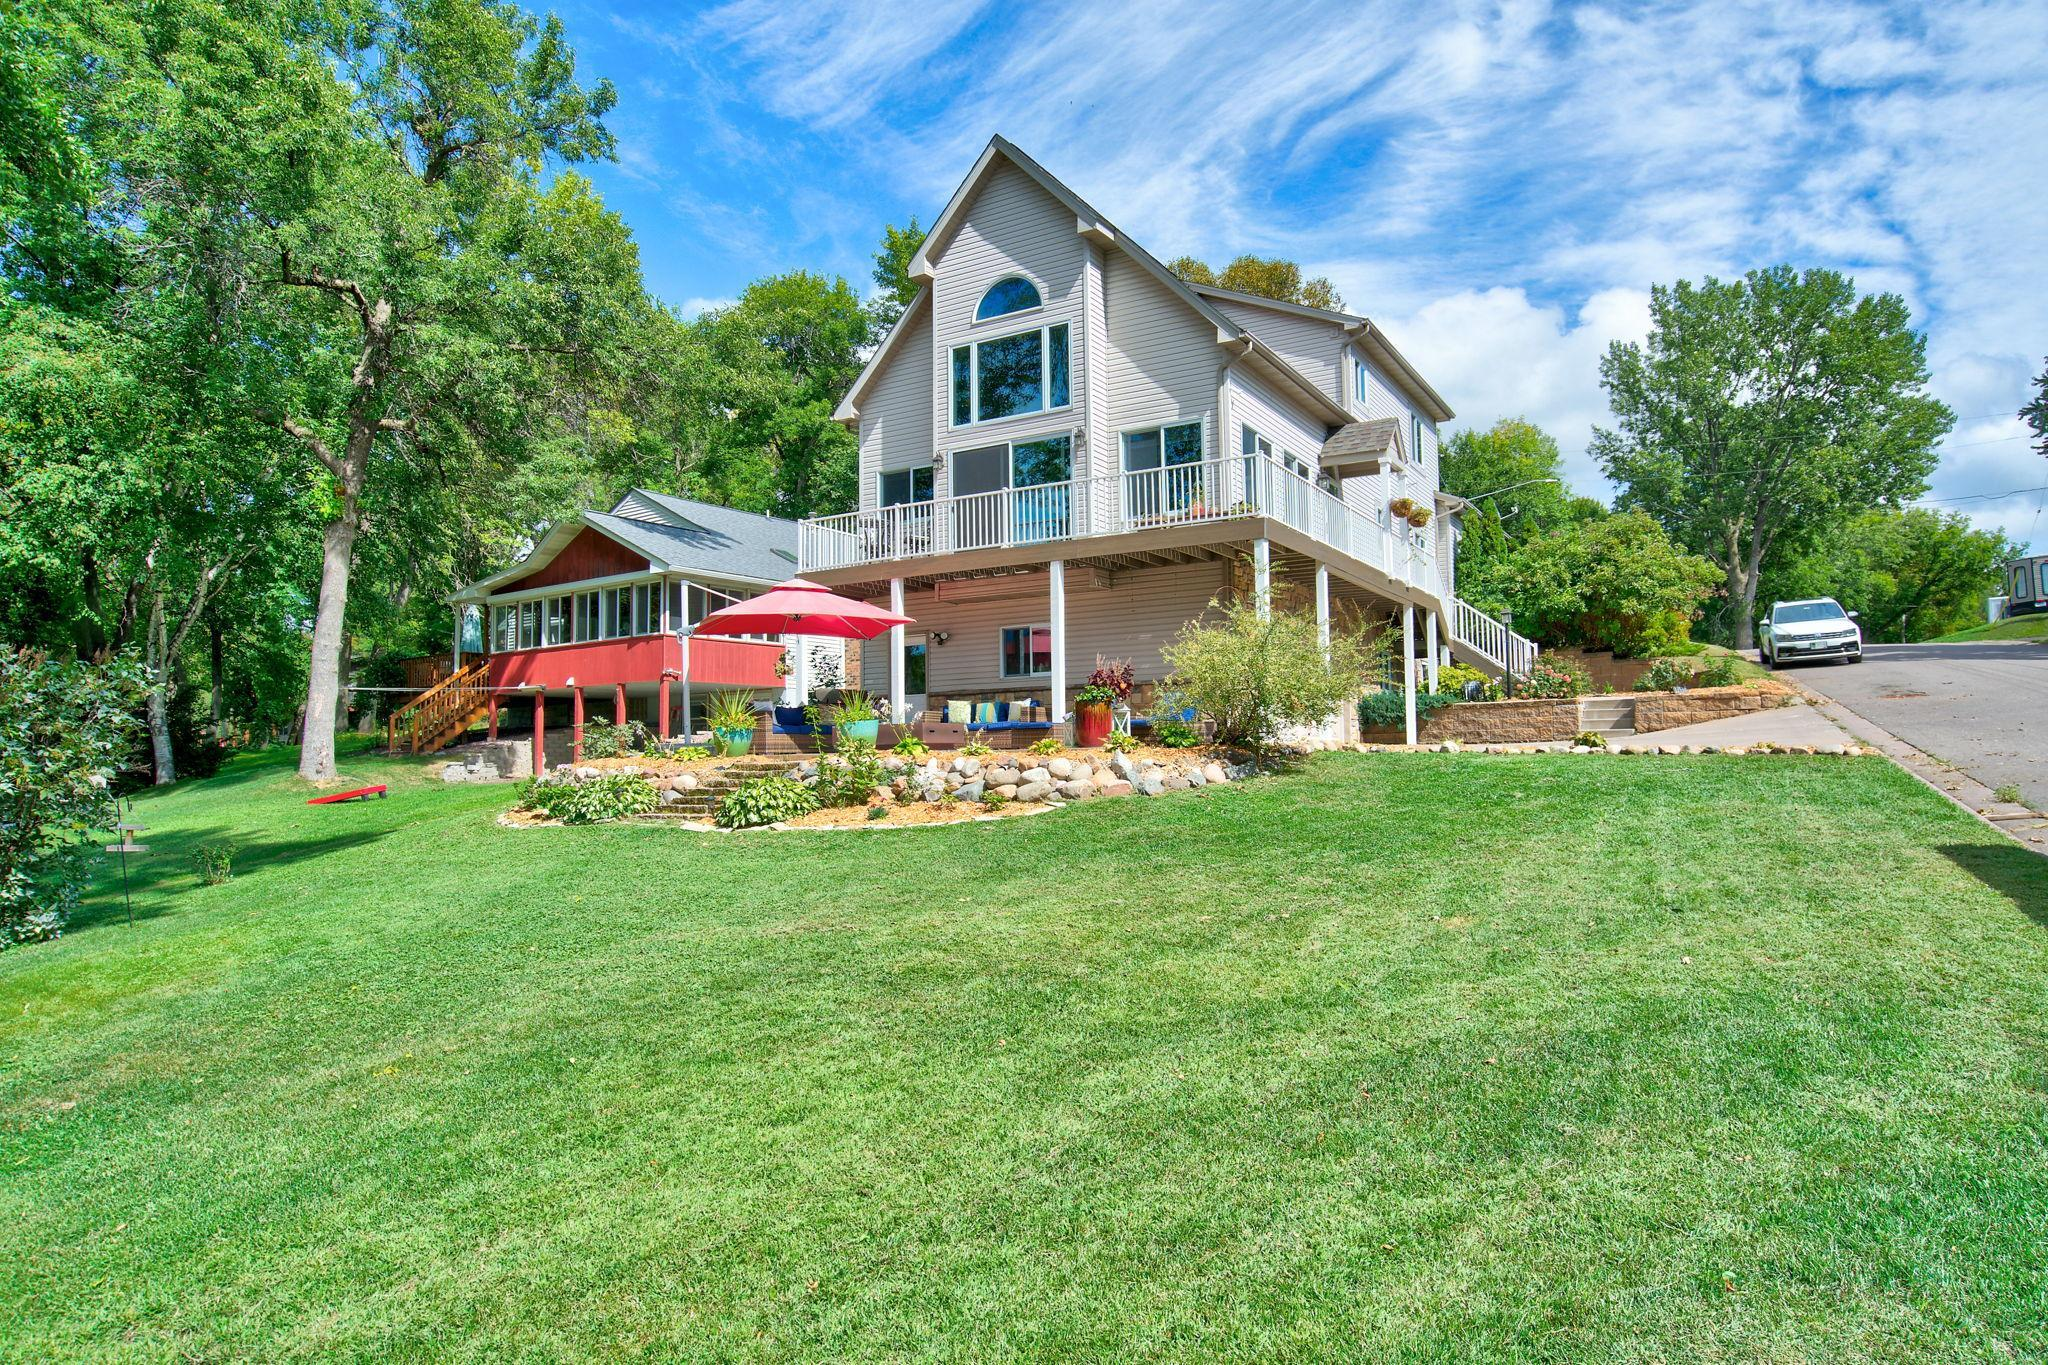 13530 Norelius Lane Property Photo - Lindstrom, MN real estate listing